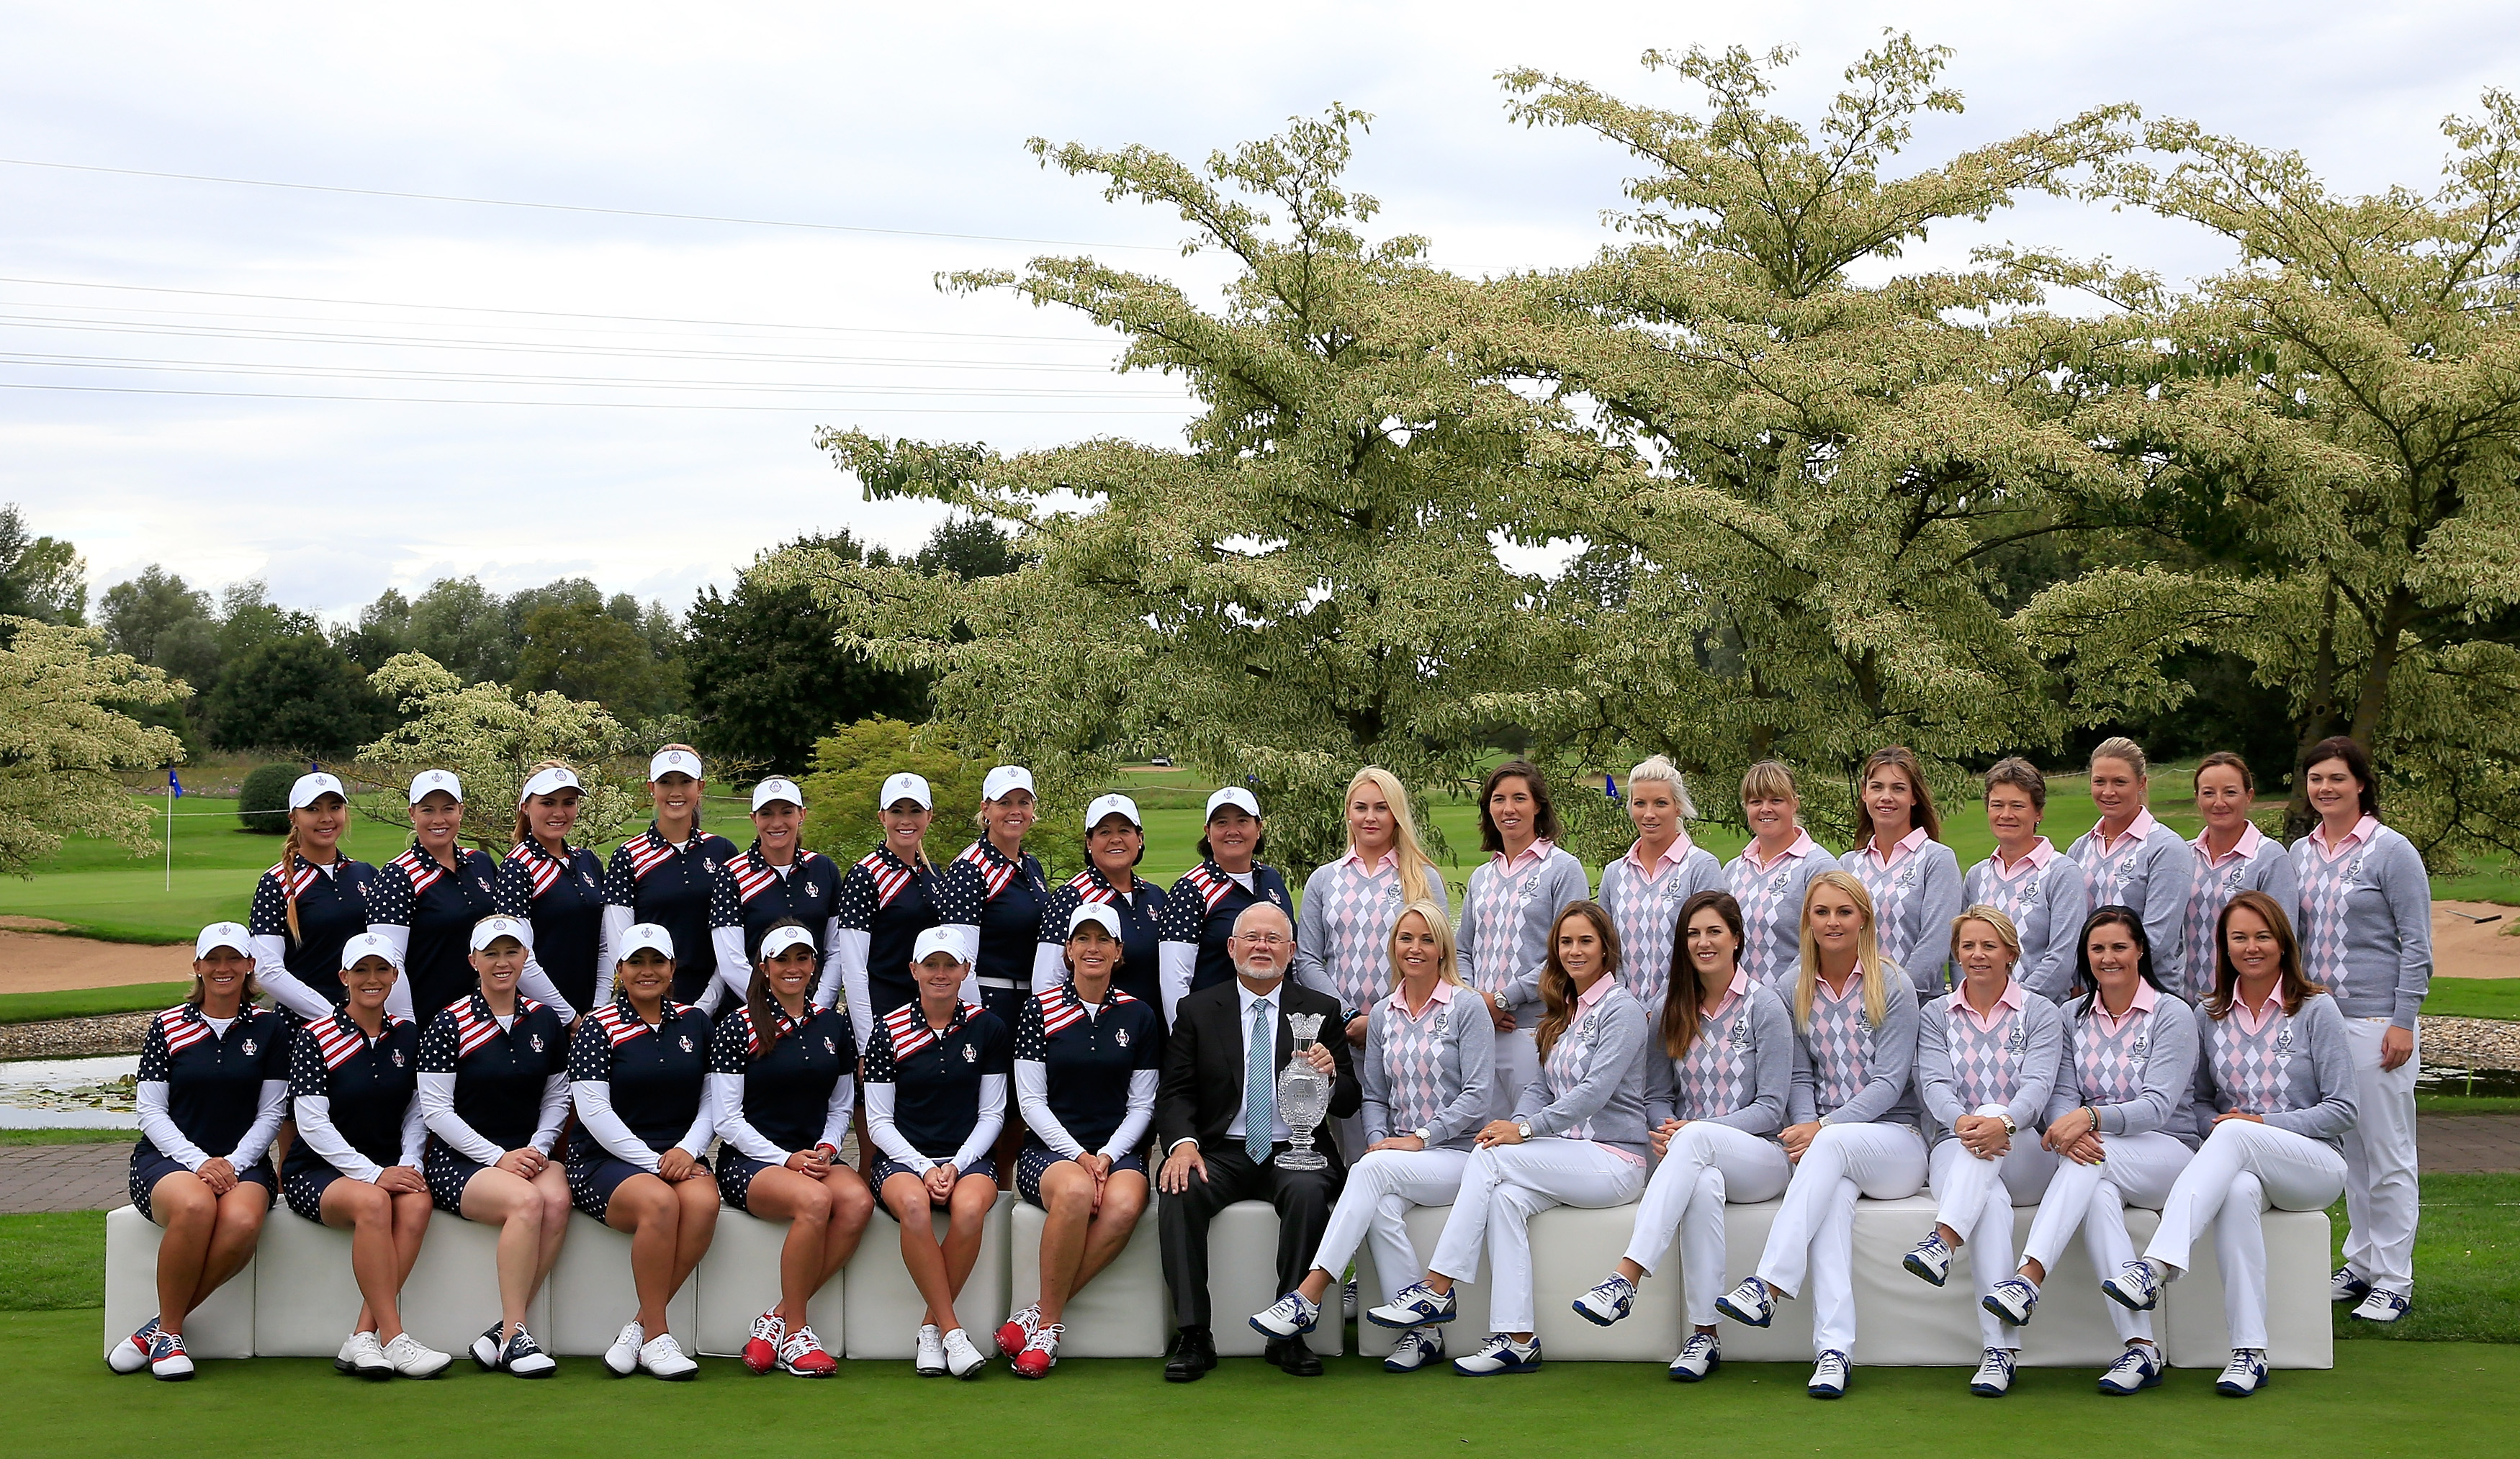 Europe will hope to win the Solheim Cup for the third time in a row in Germany (Photo: Getty Images)